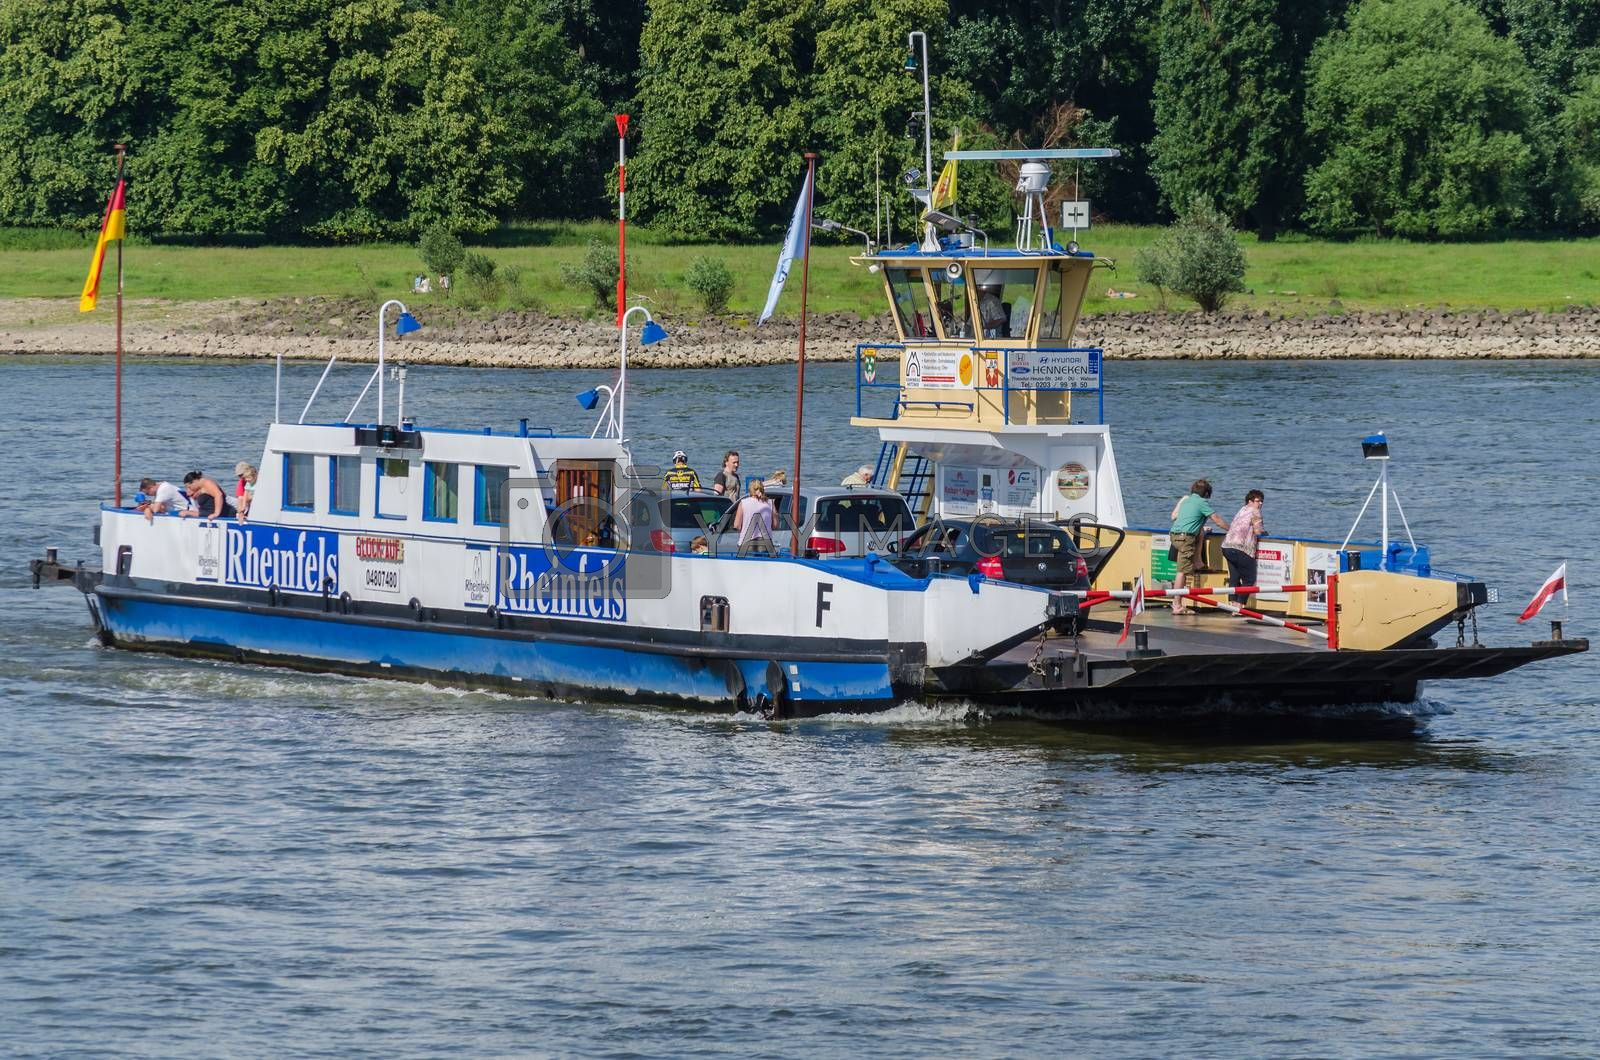 Orsoy, Nrw,  Germany - June 09, 2014:  Ferry City Orsoy on the Rhine. The ferry connects Orsoy in NRW, the city of Duisburg Walsum. Some passengers on the ship